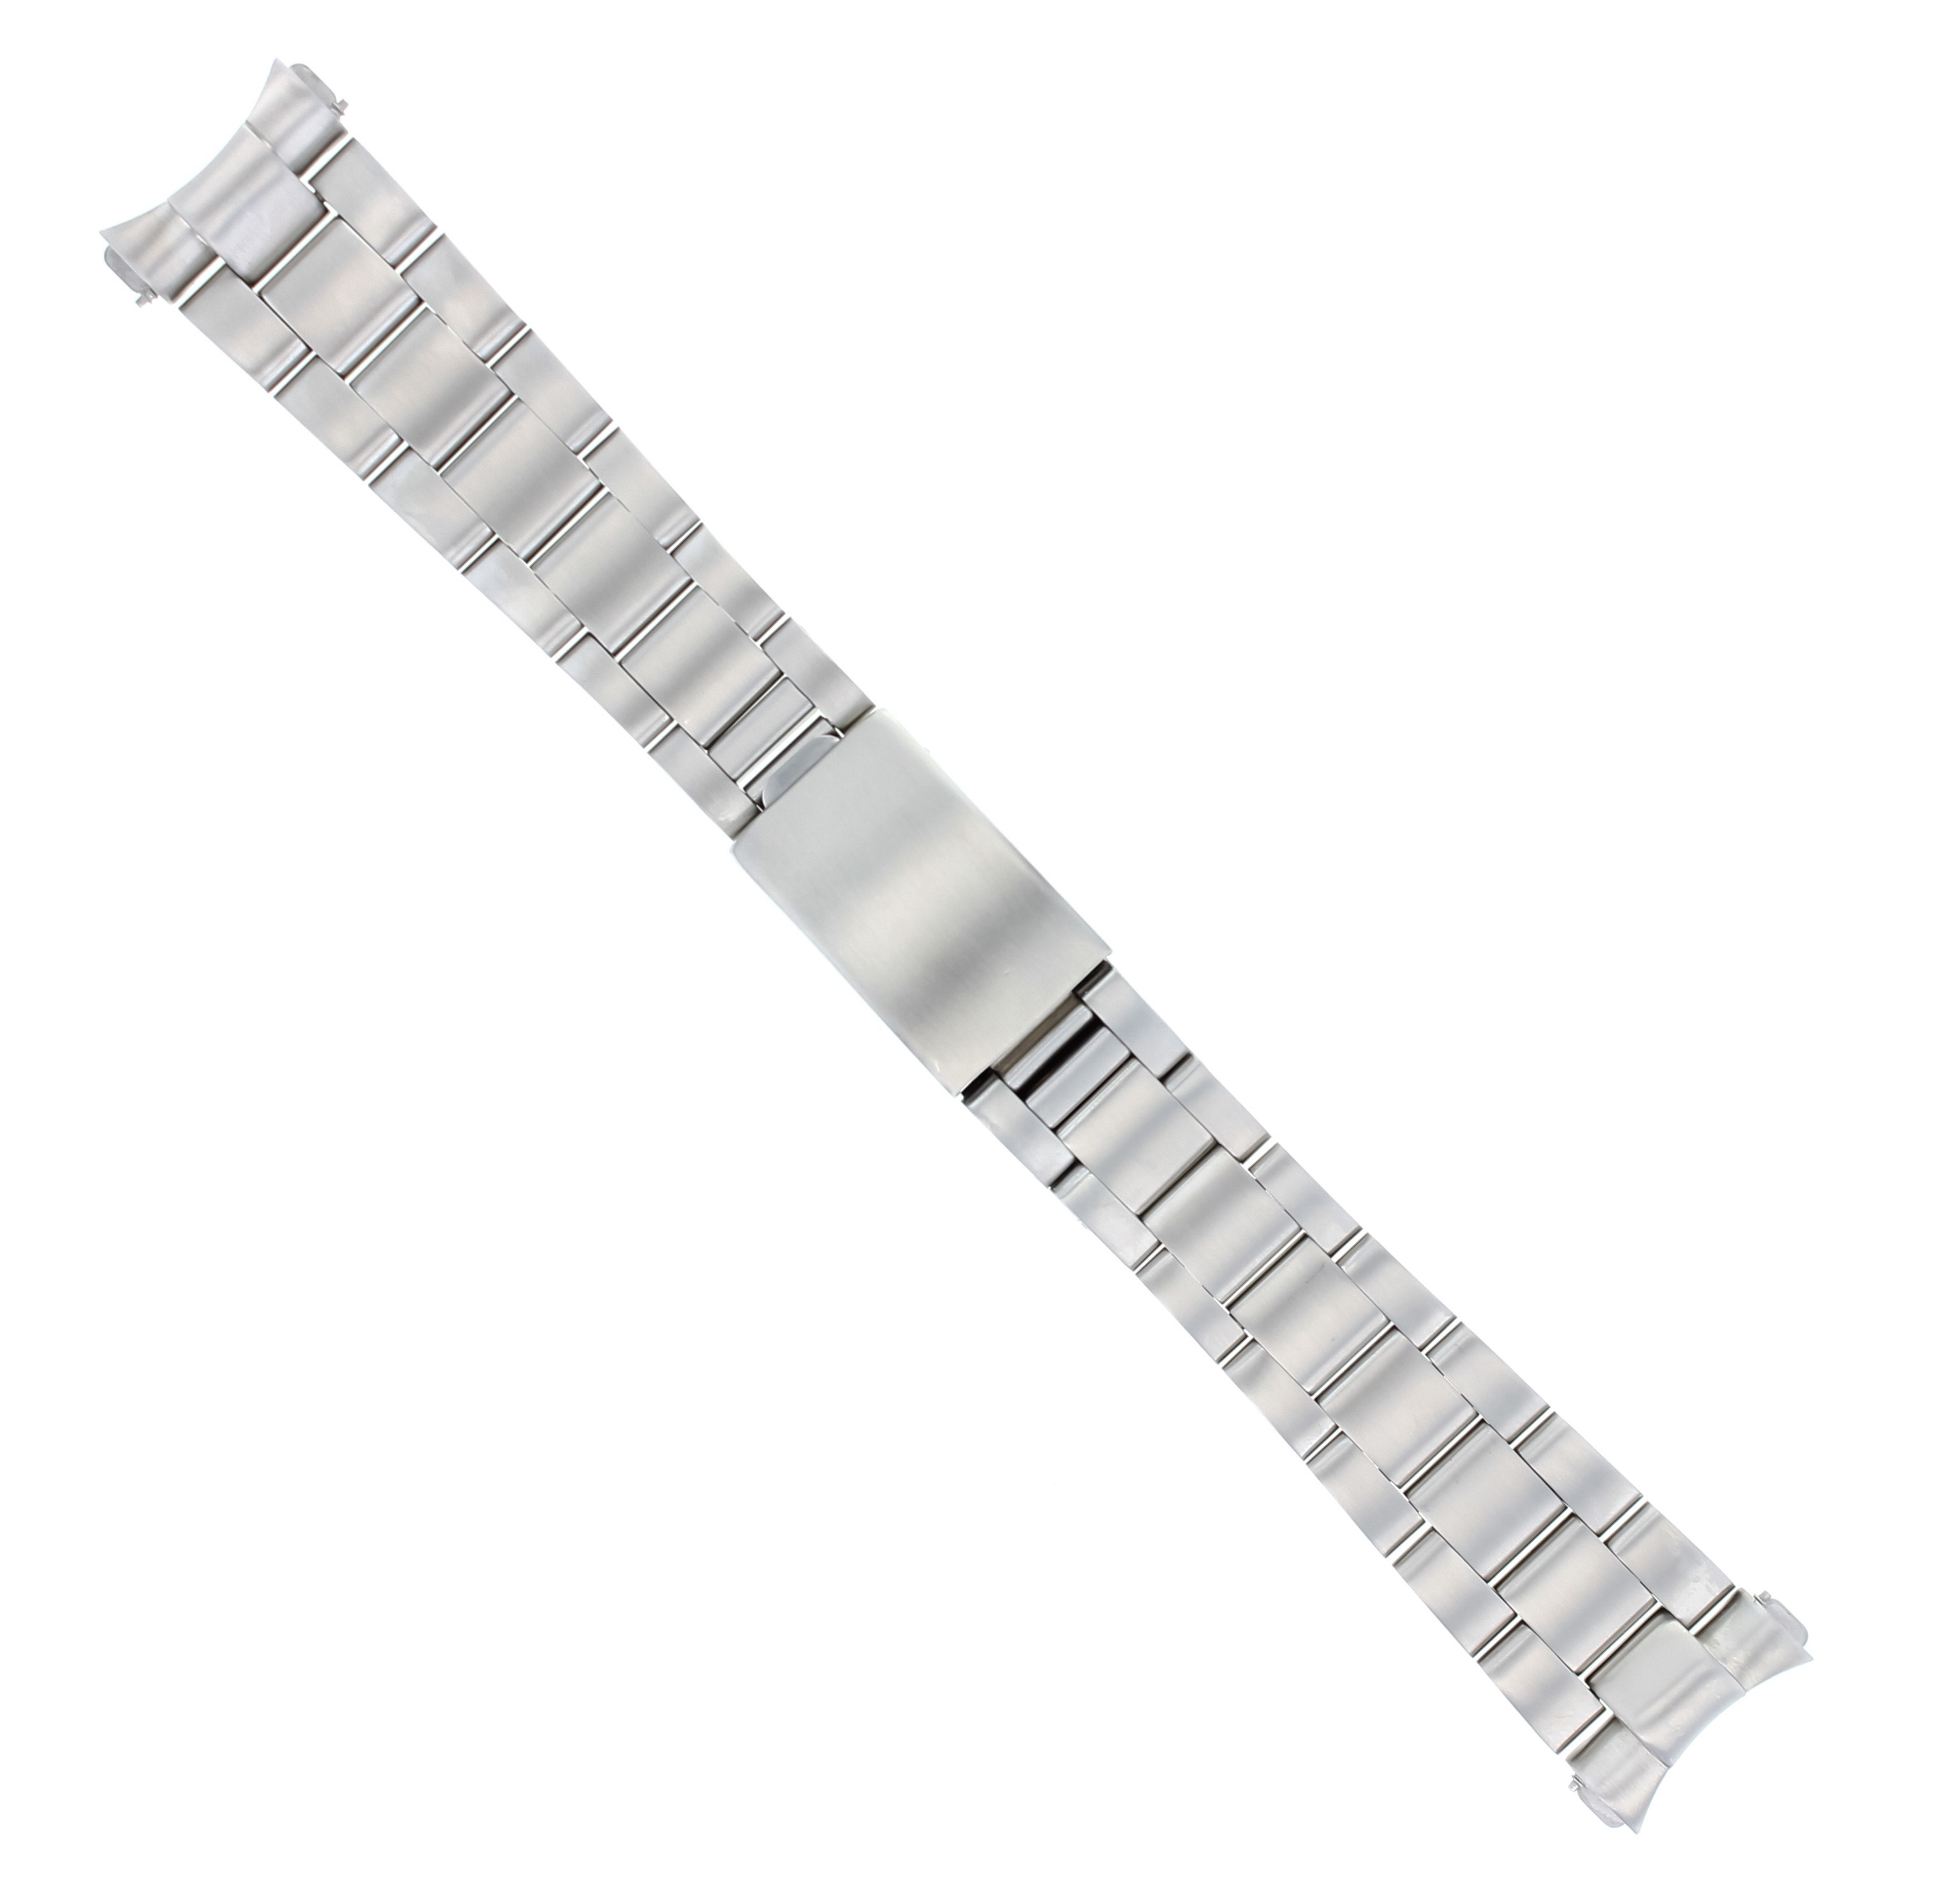 OYSTER WATCH BAND BRACELET FOR ROLEX 20MM DATEJUST WATCH MATTE SOLID END PIECE